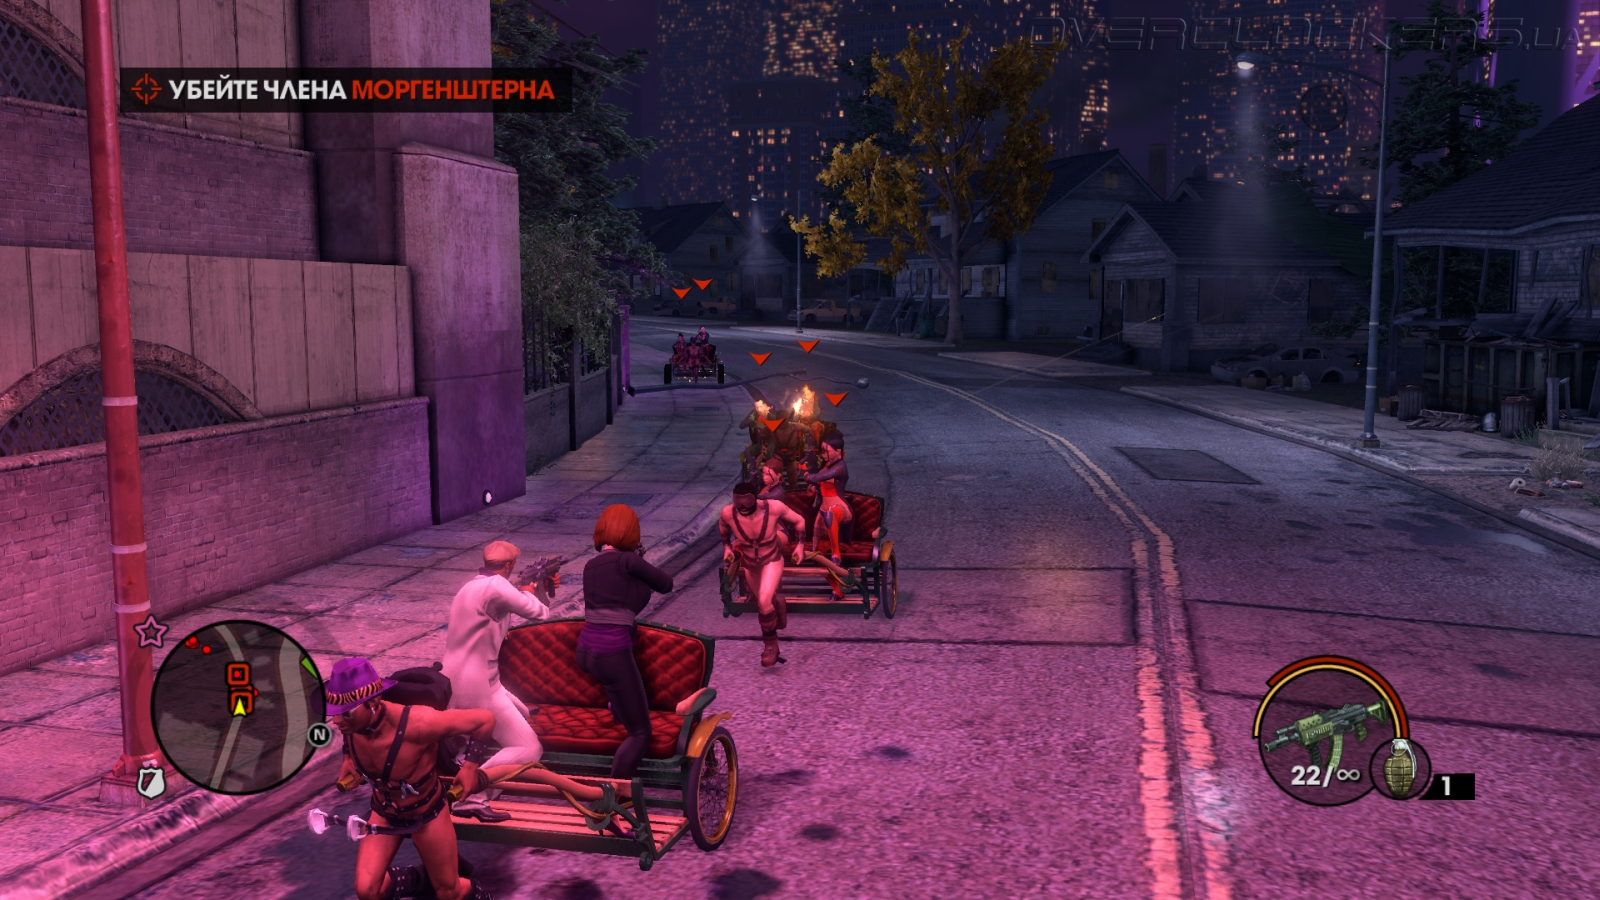 Моды на saints row 2 секс